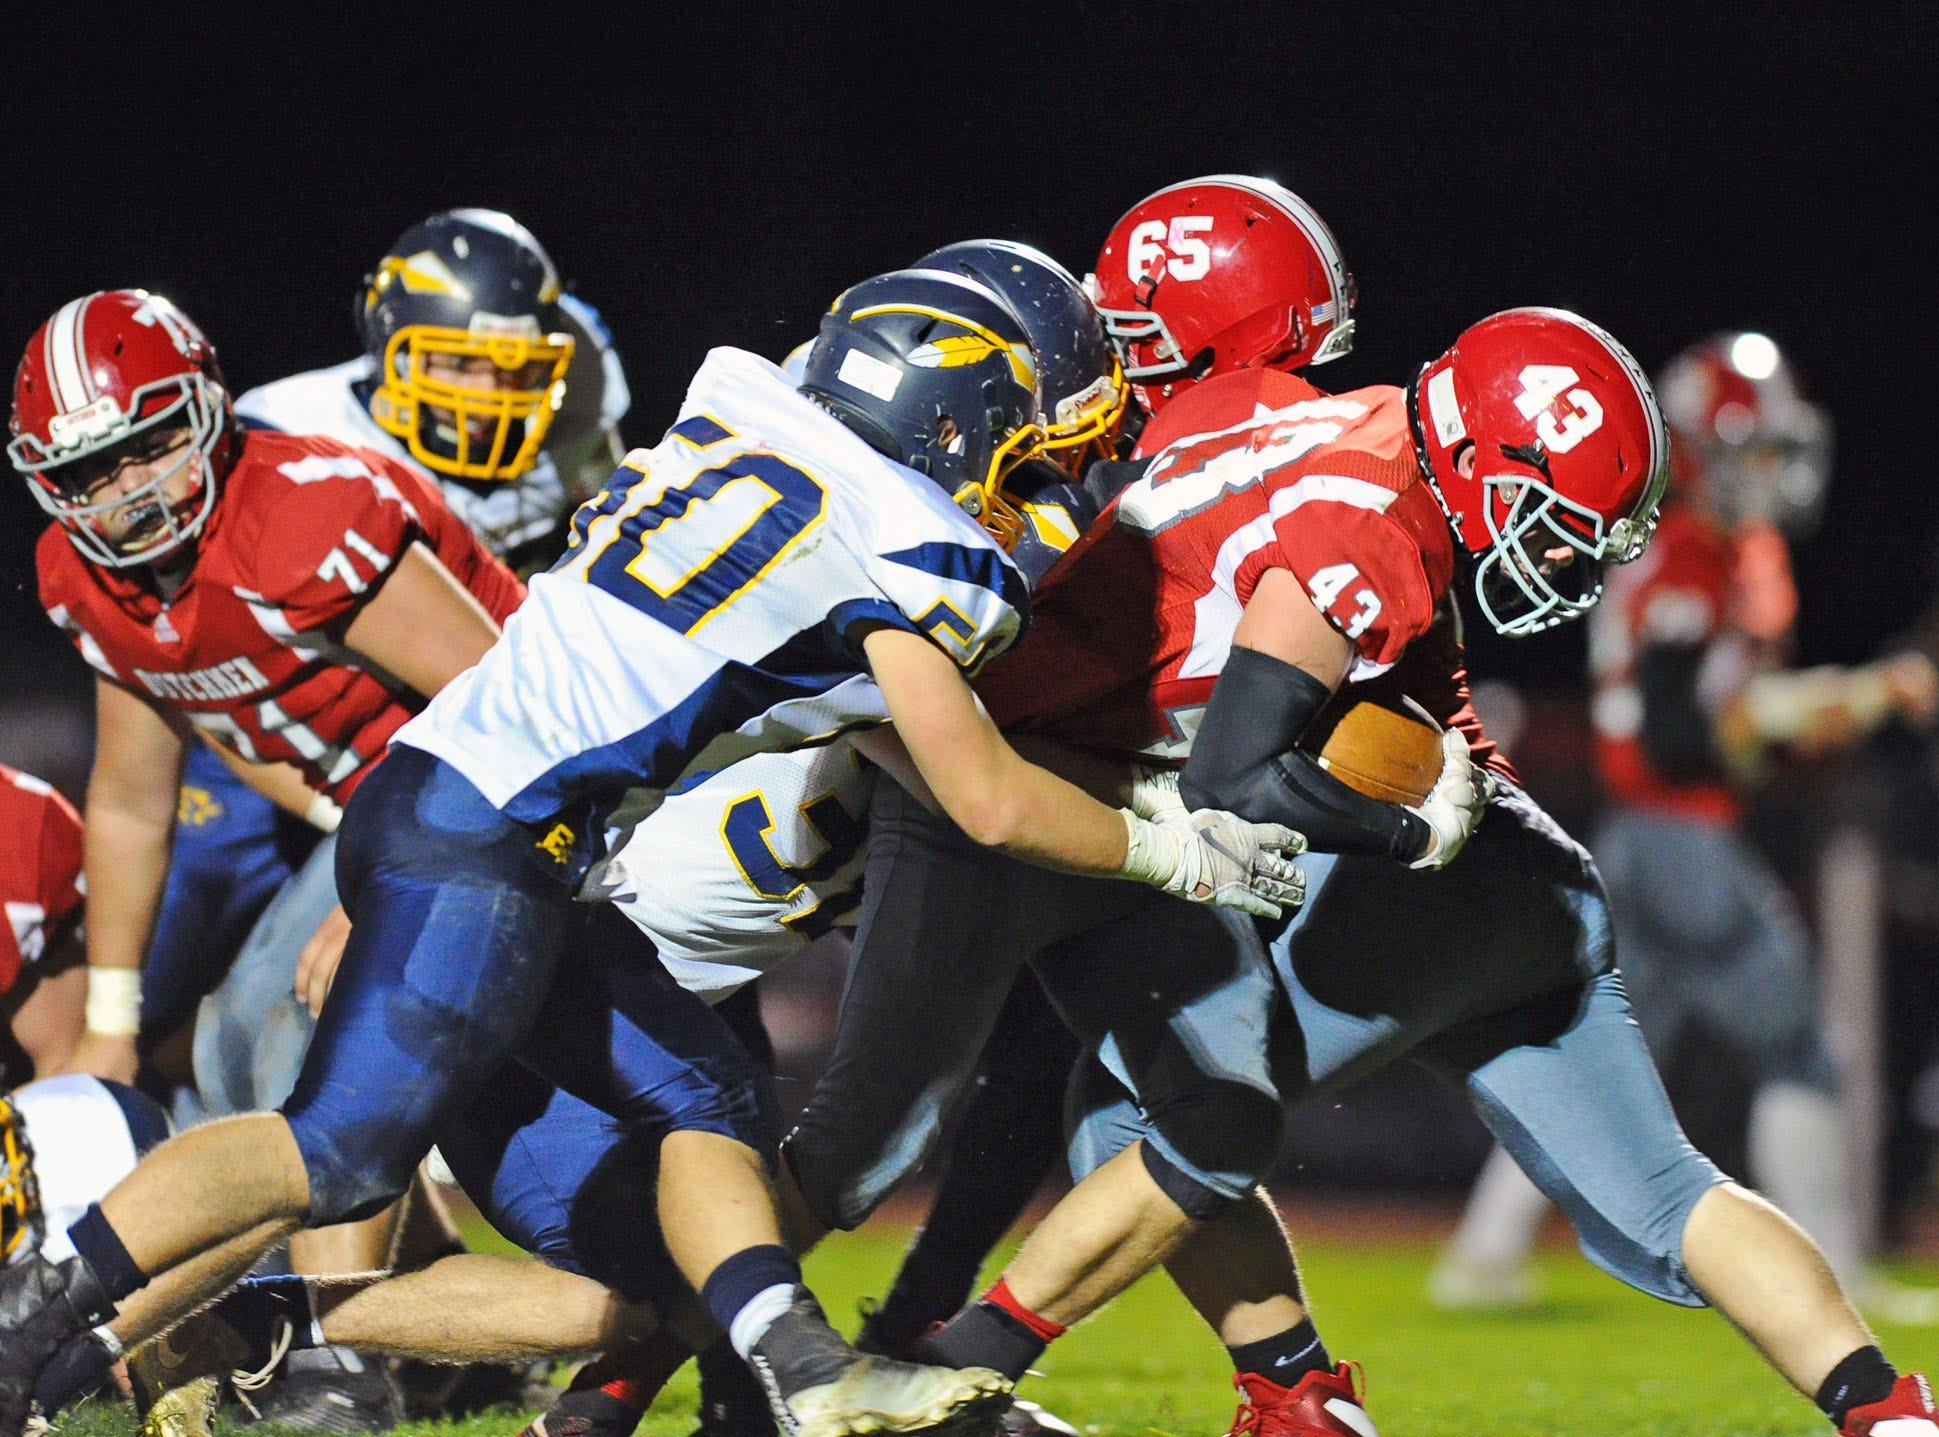 A-C's Trevor Porche (43) bursts through the middle for an A-C first down during first half action.